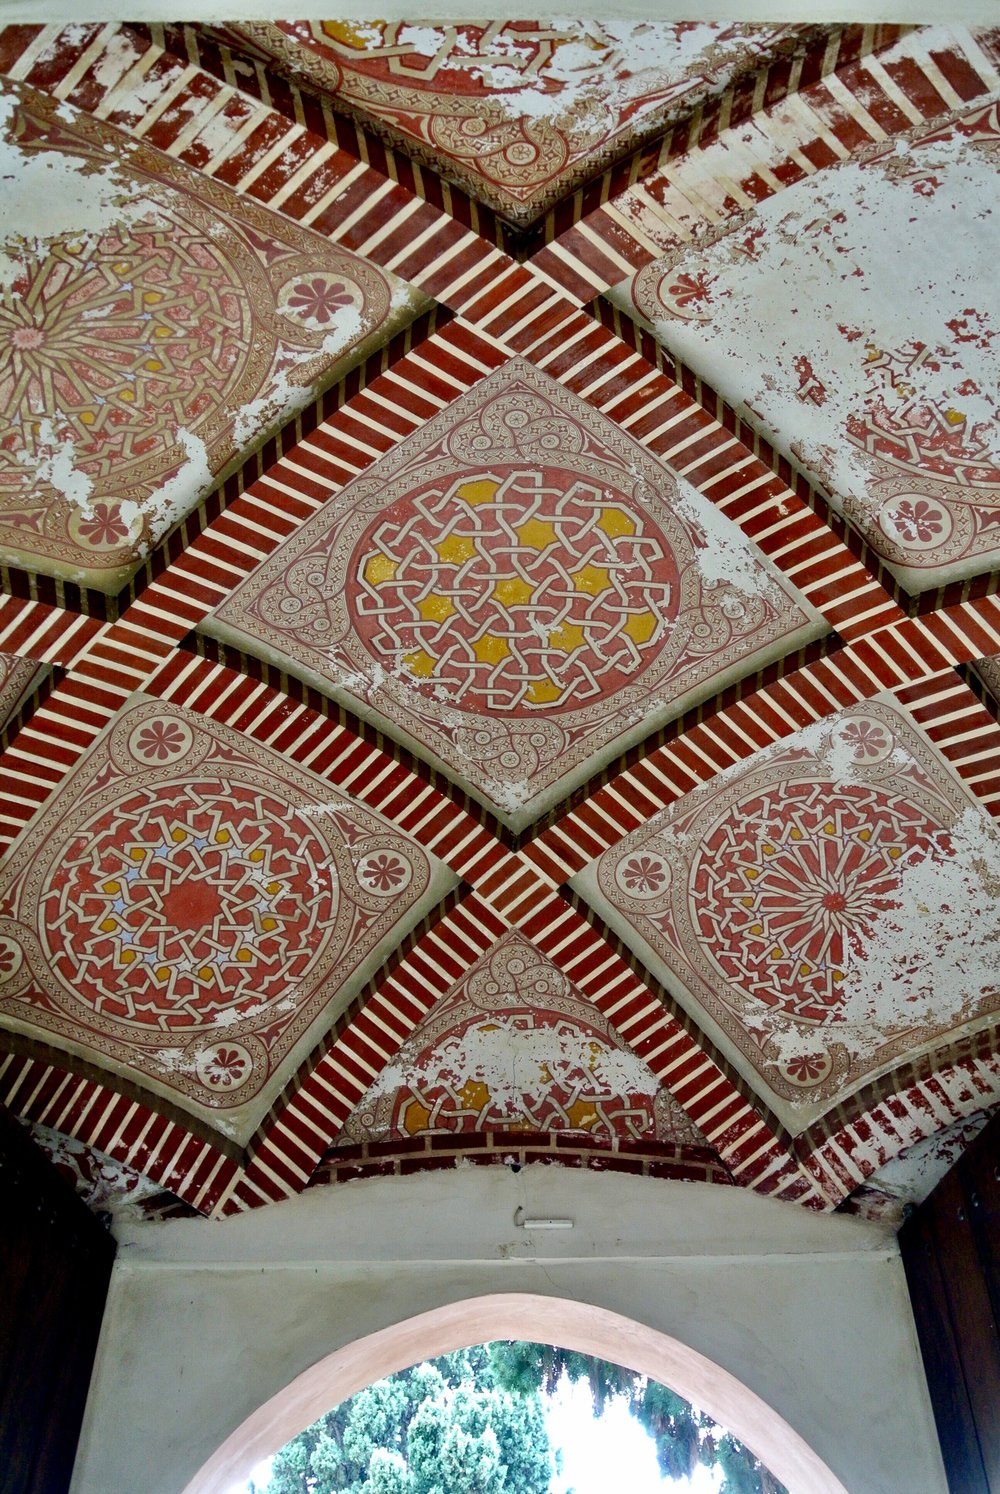 Don't forget to look up: The tilework on the ceiling is impressive, if faded, in parts